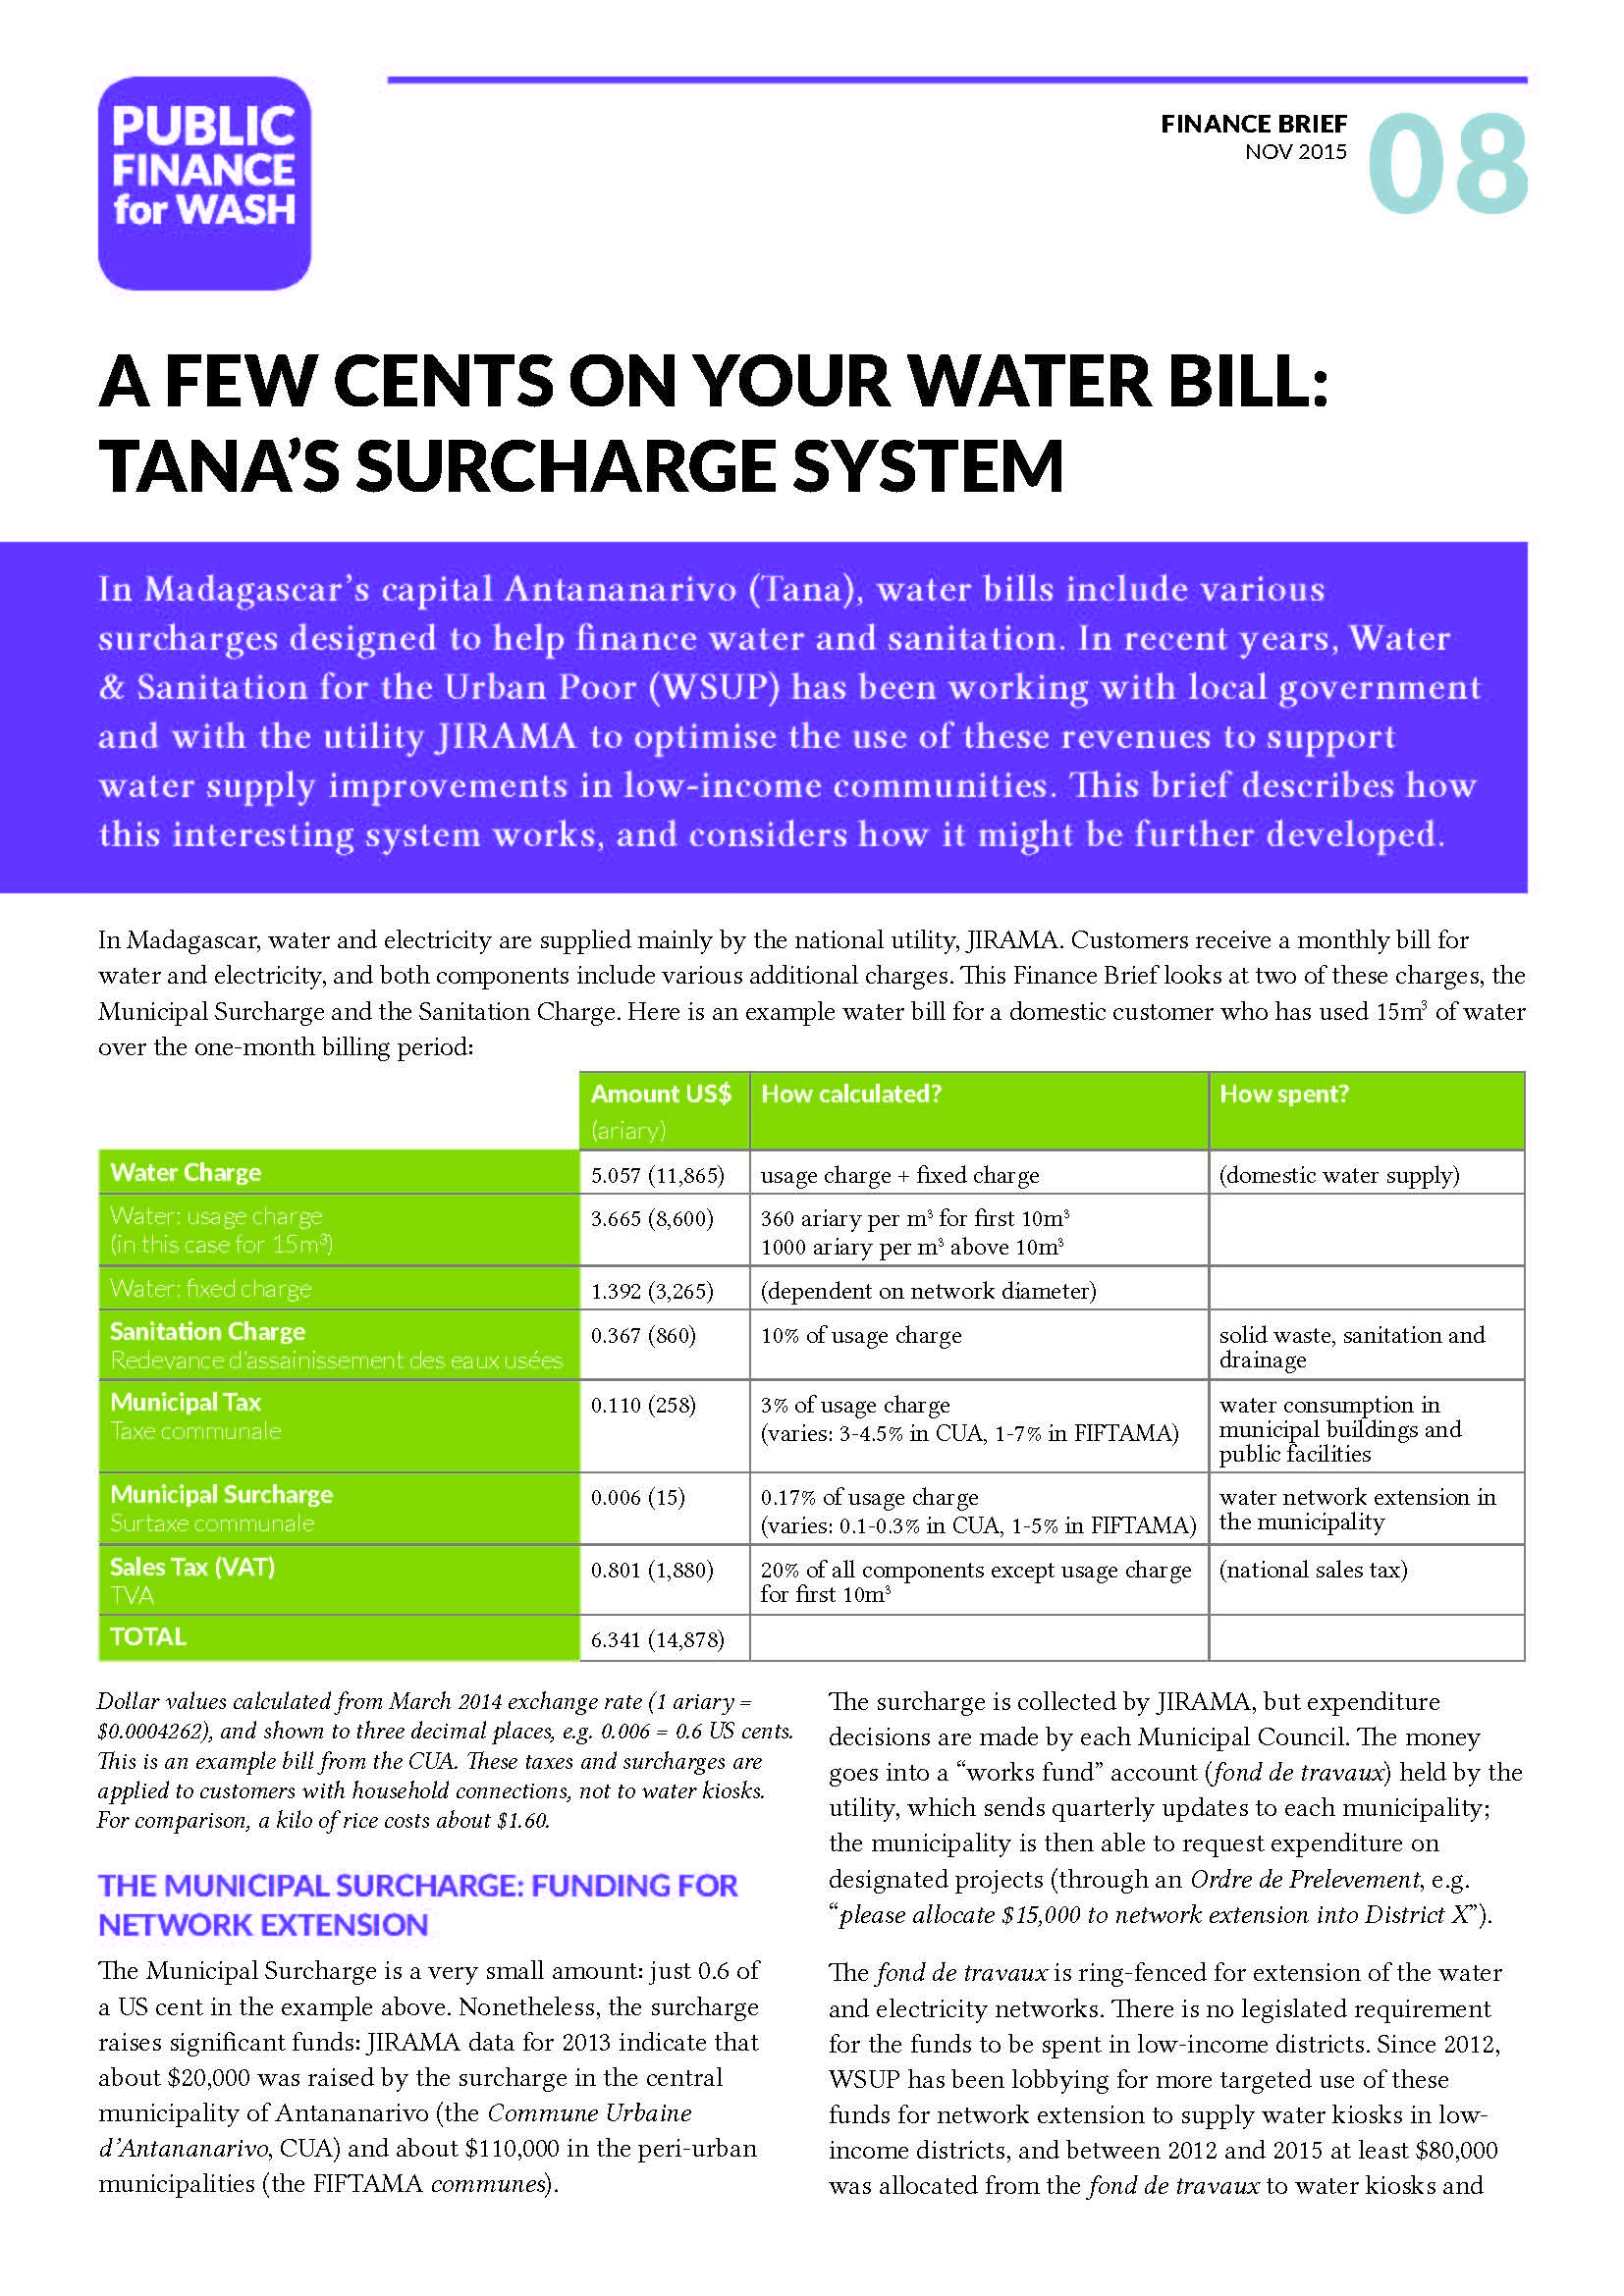 Finance Brief 8: A few cents on your water bill: Tana's surcharge